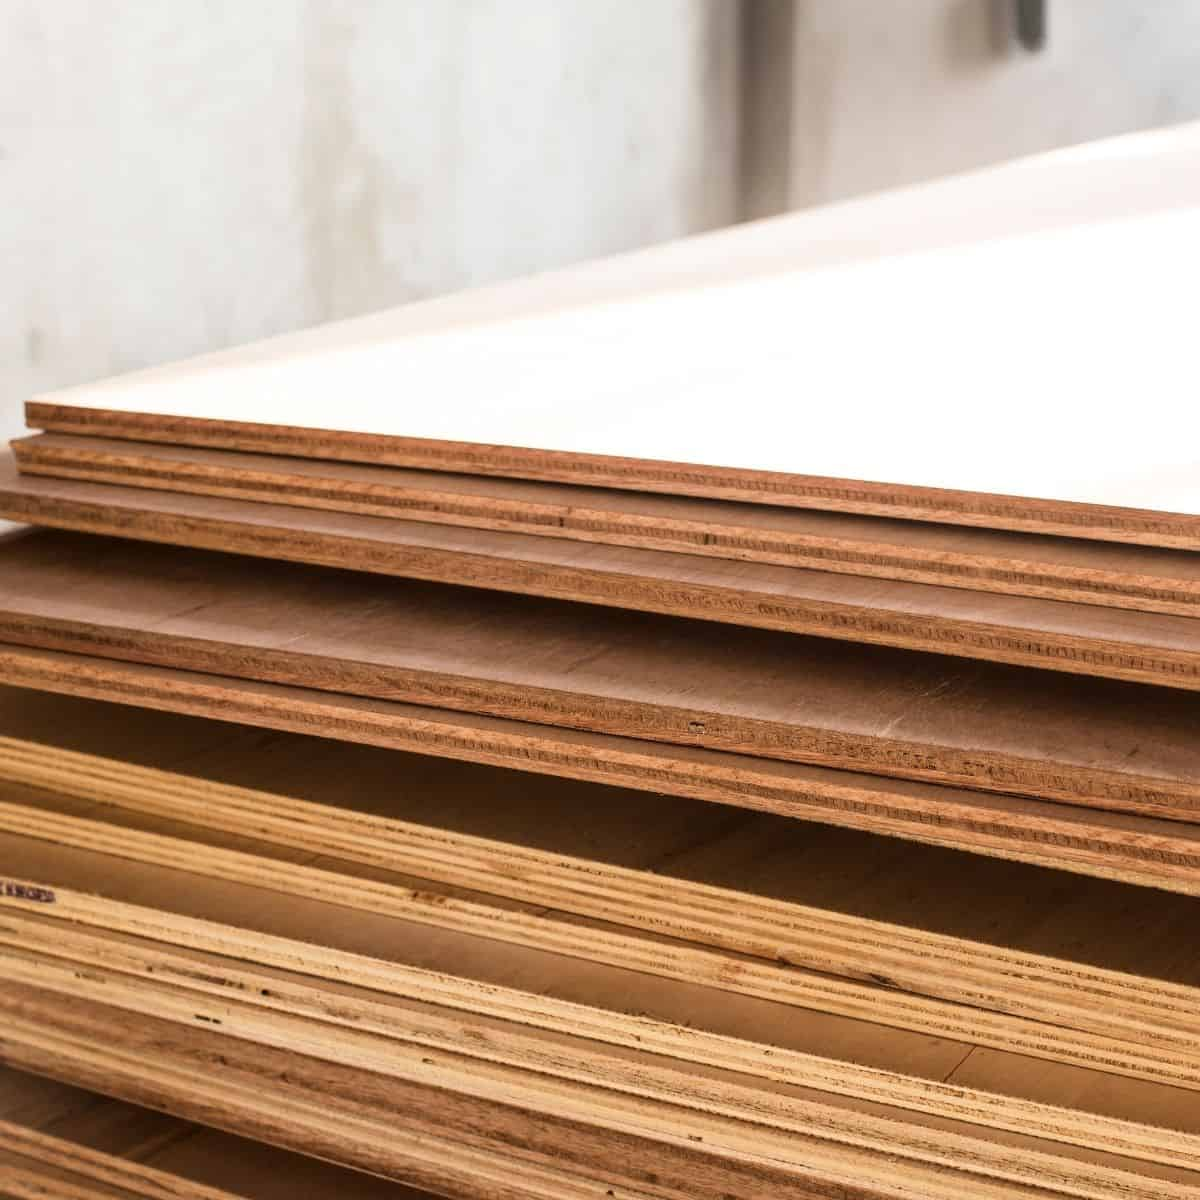 layers on edges of plywood visible in stack